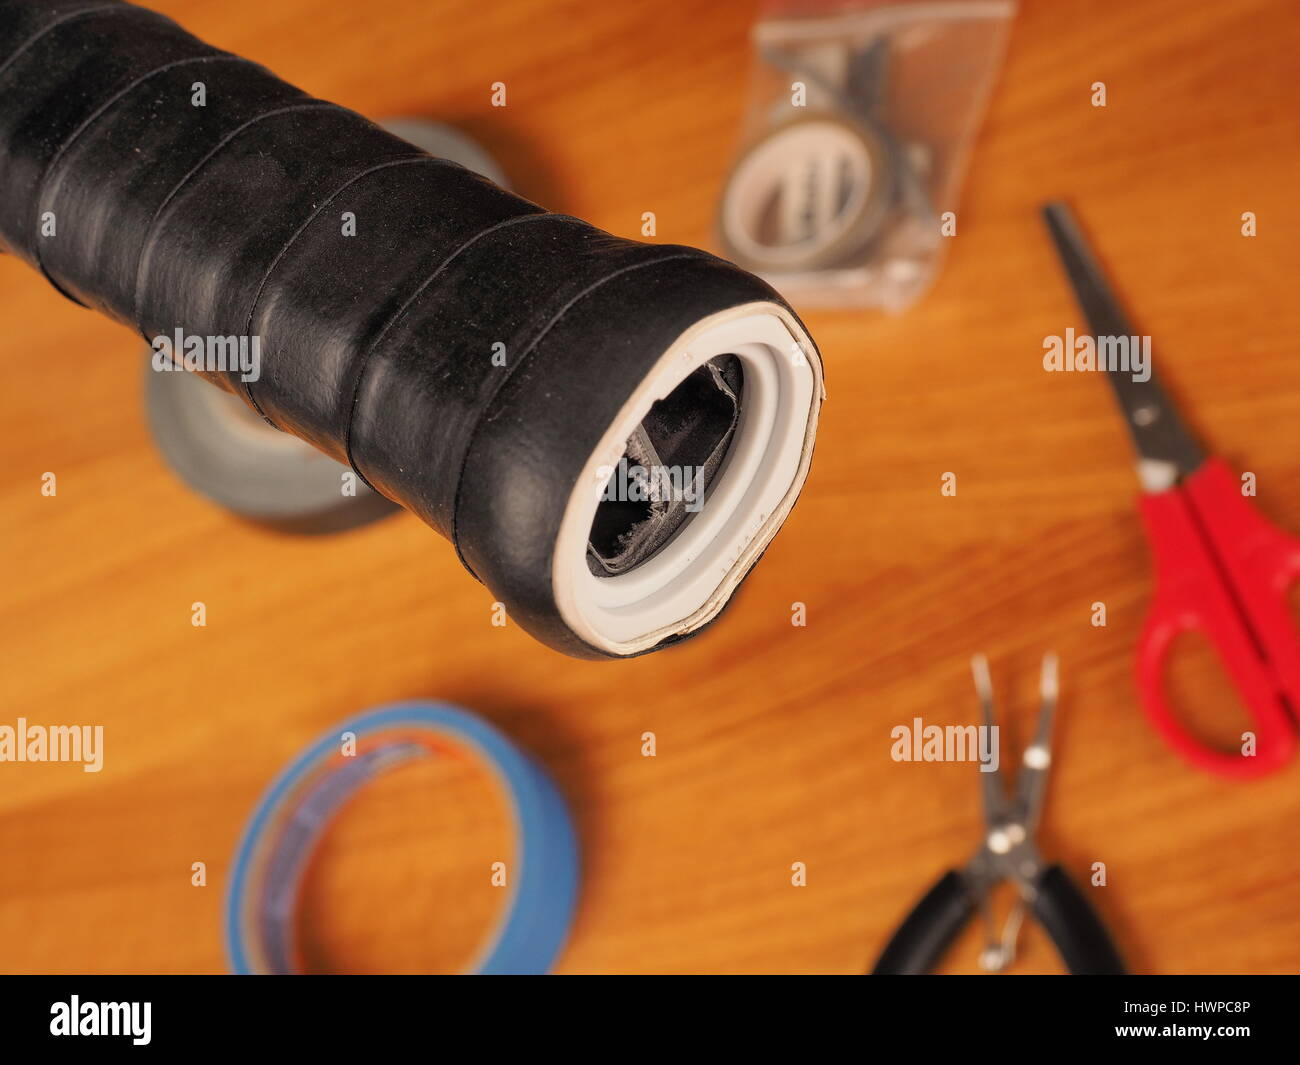 Melbourne, Australia, 2015, May 9: Tennis racquet handle close-up of the hollow inside through the opening after - Stock Image